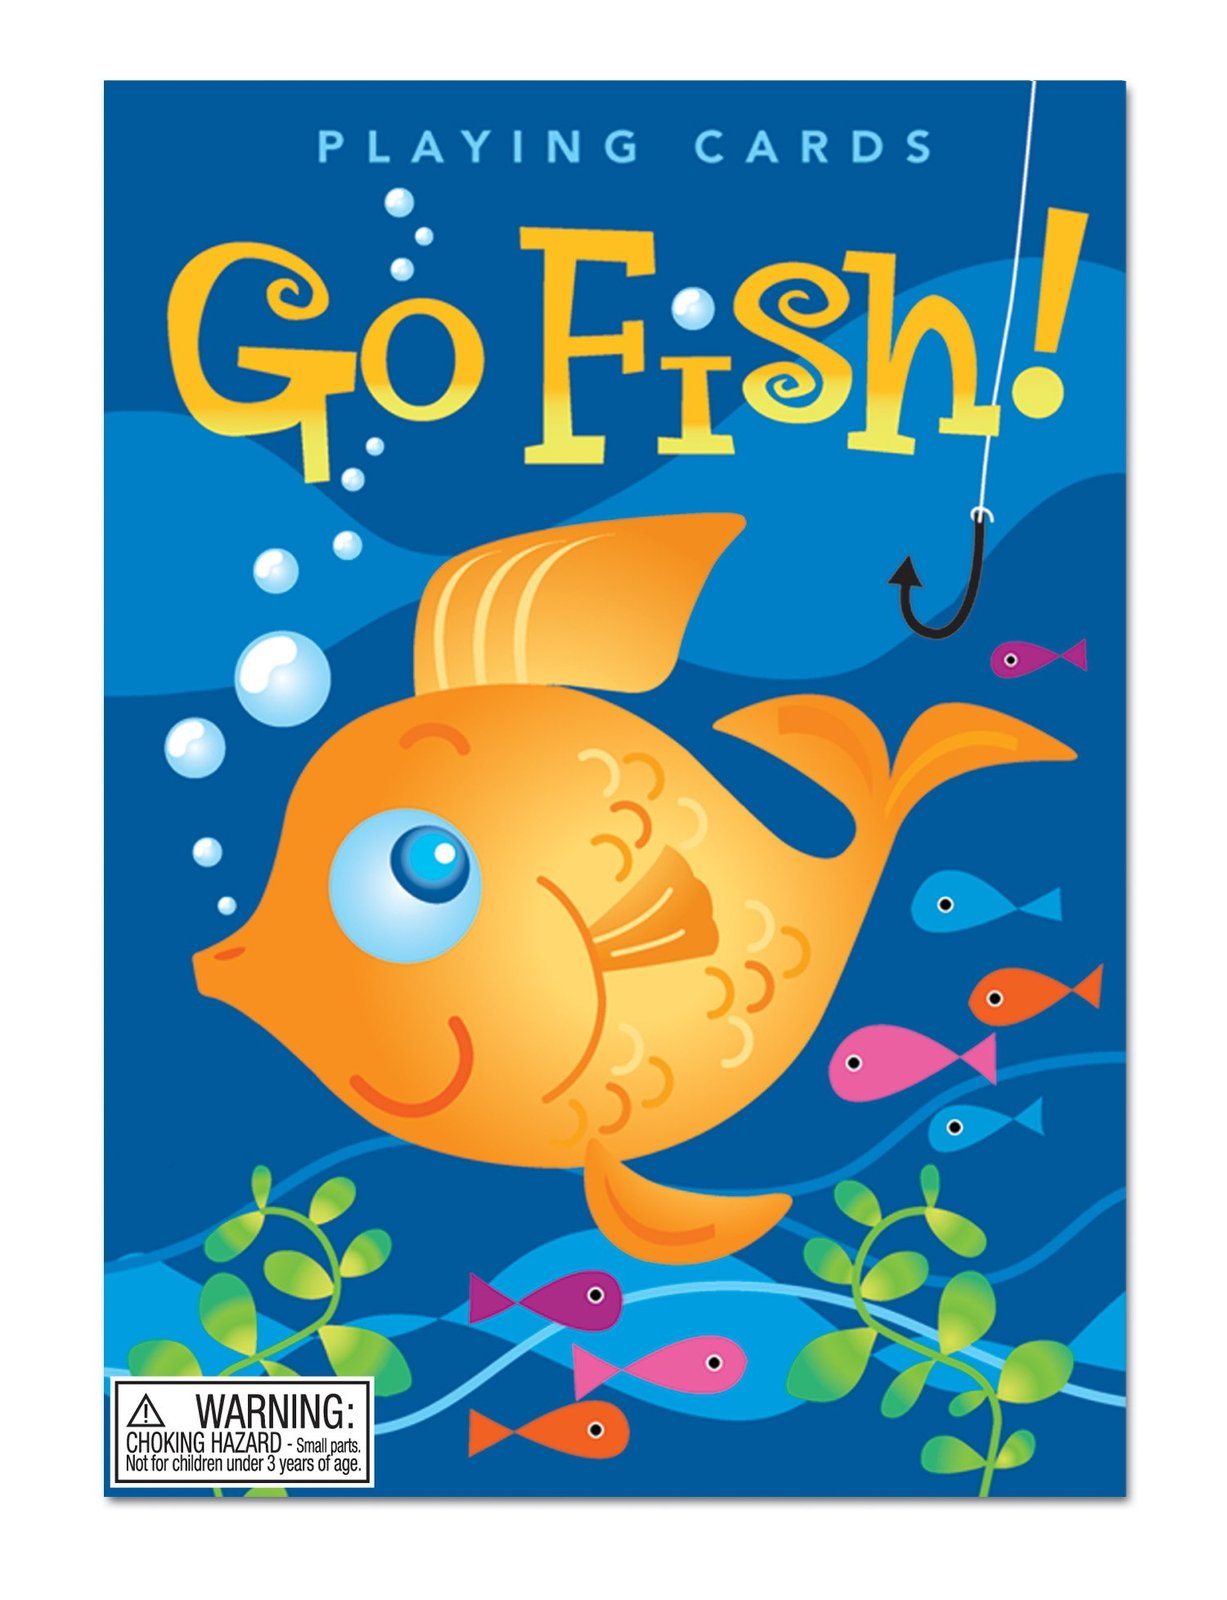 Wgr refocus and top games of all time windsor gaming for Go fish cards